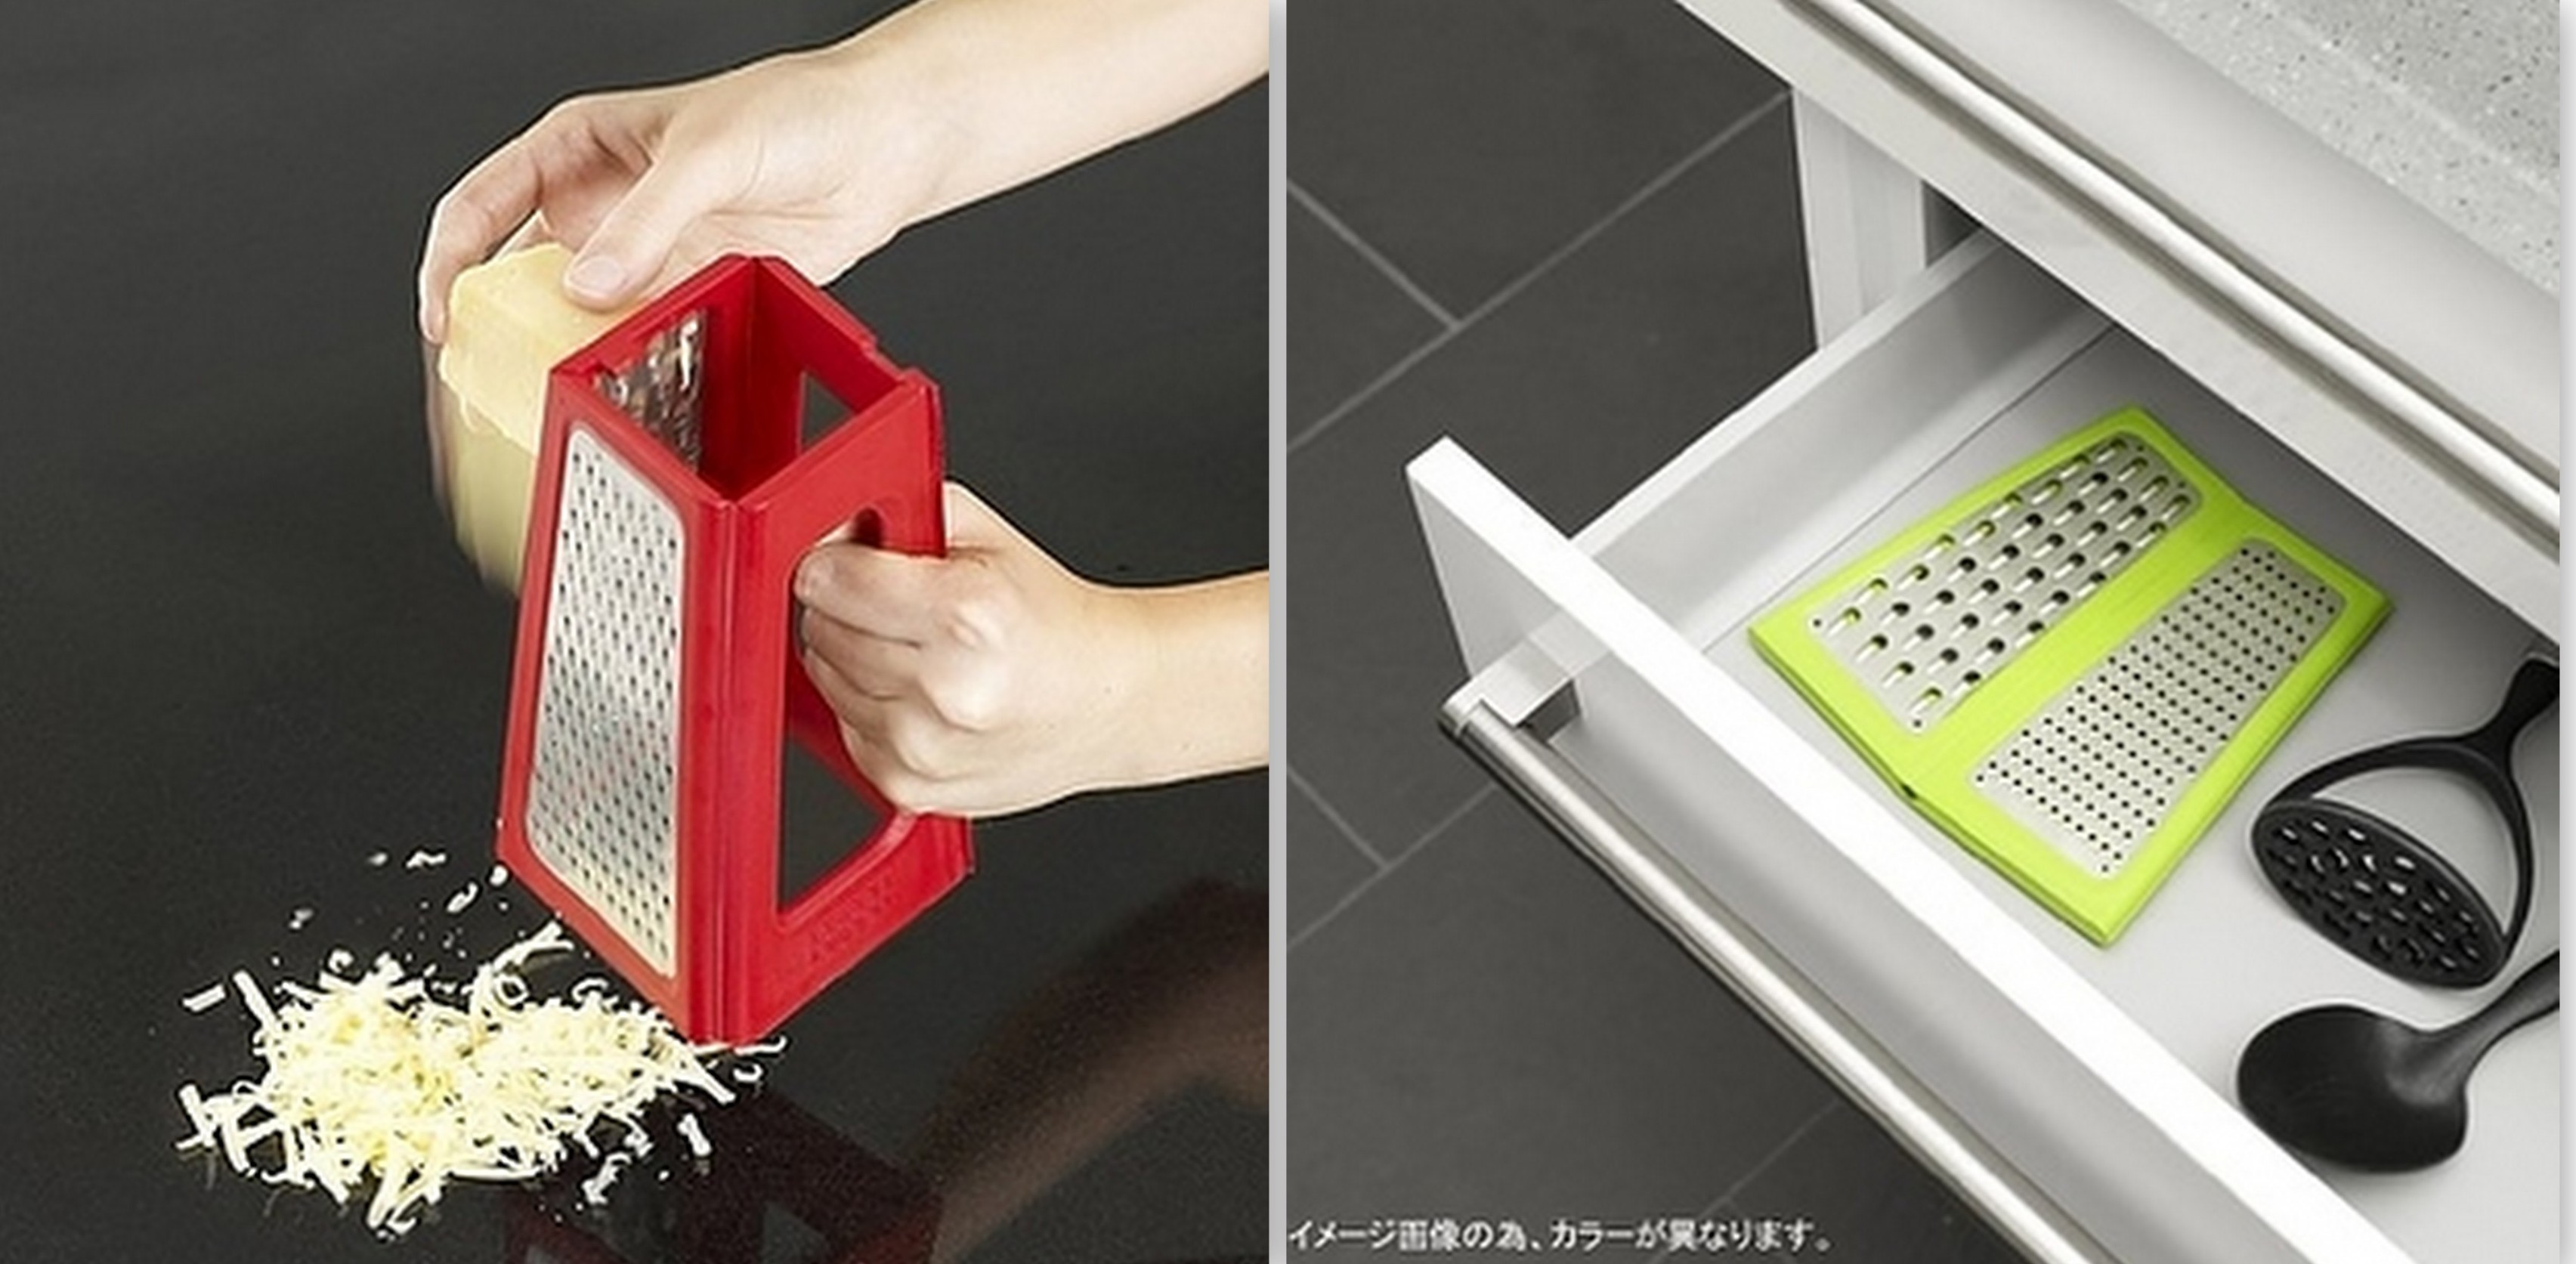 19.A Fold-Up Cheese Grater